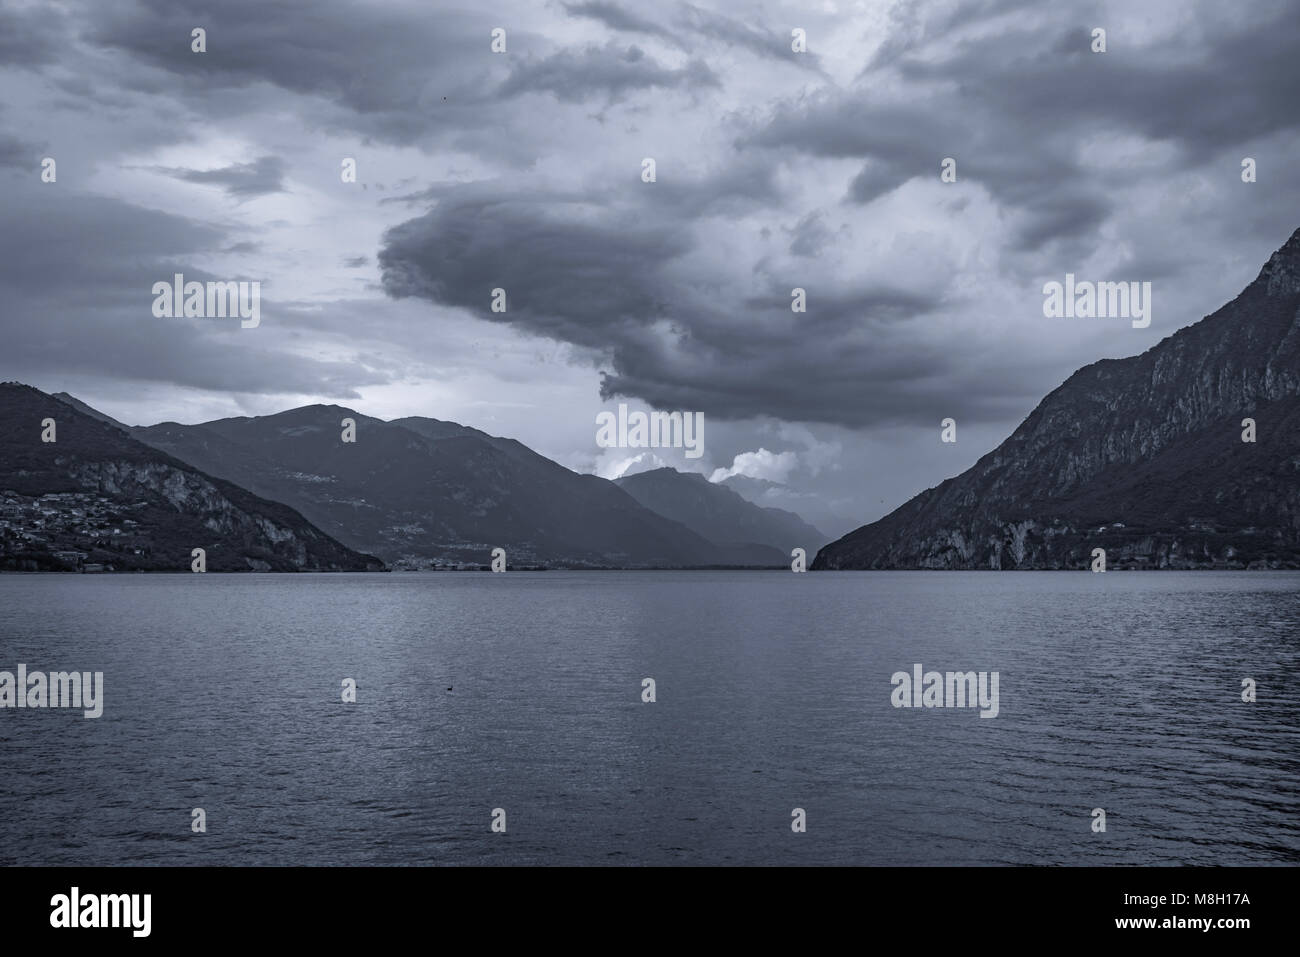 Summer storm over the lake - Lago d'Iseo - Italy - Stock Image